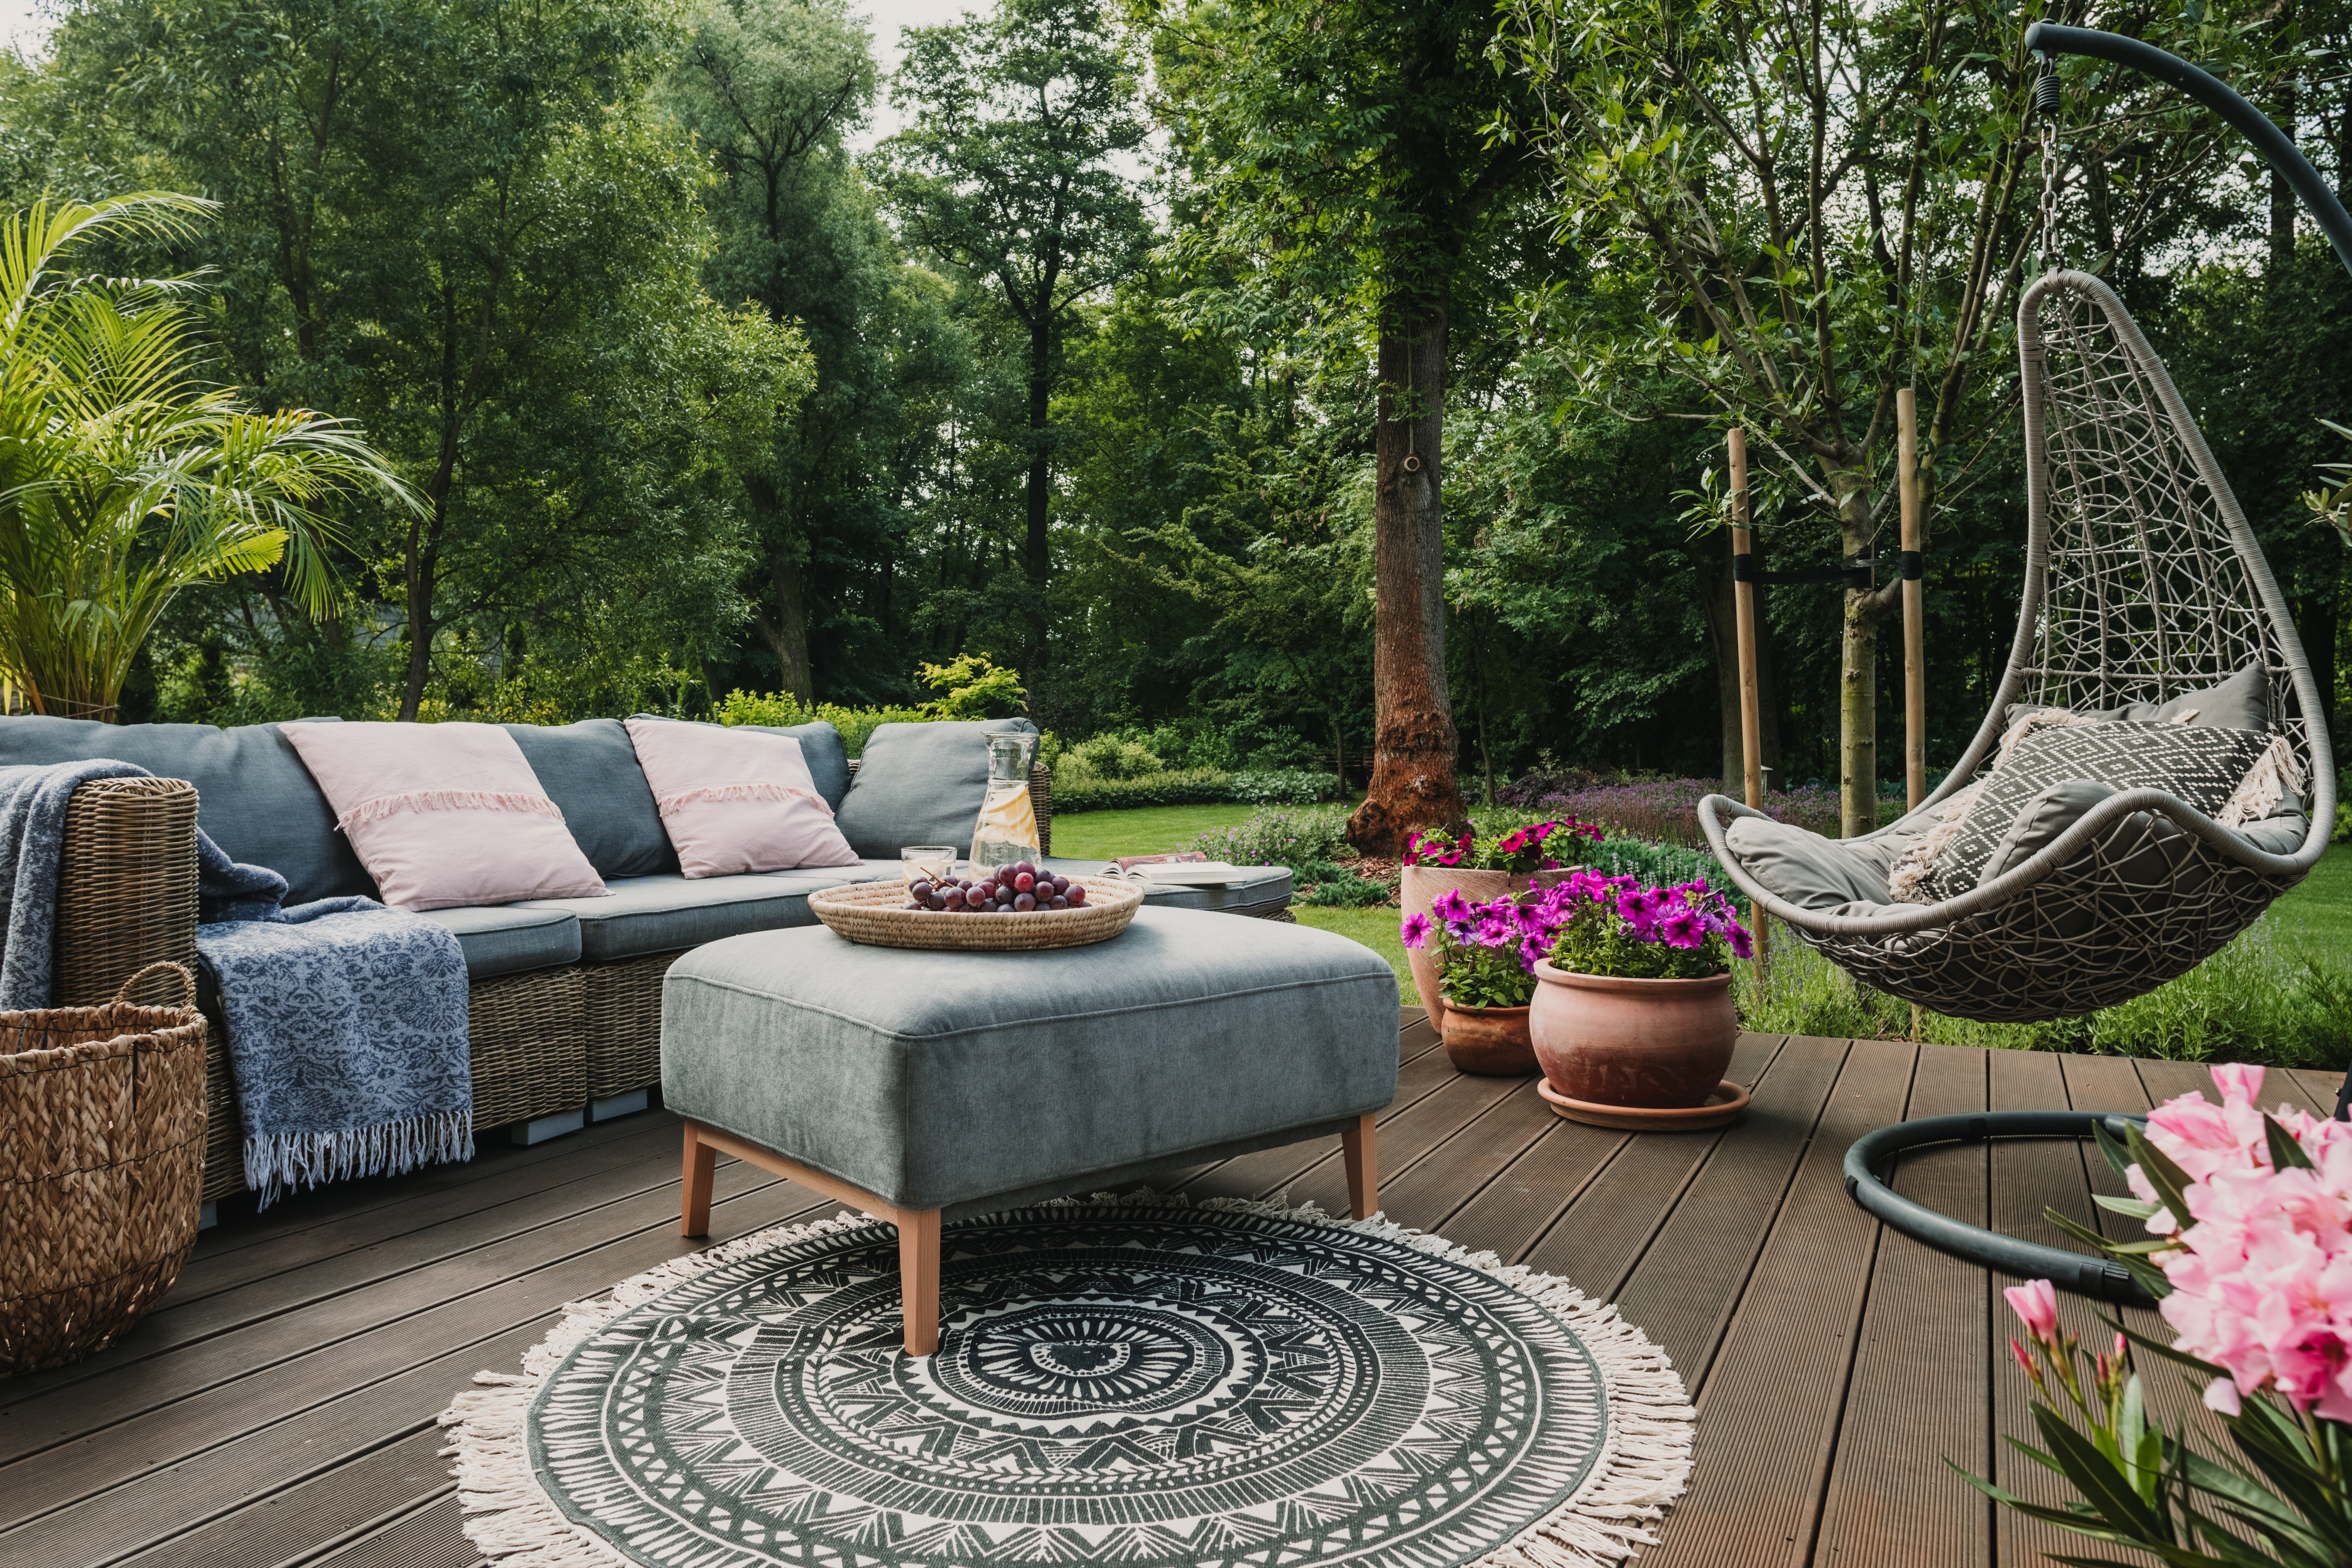 5 TYPES OF PATIO SURFACES